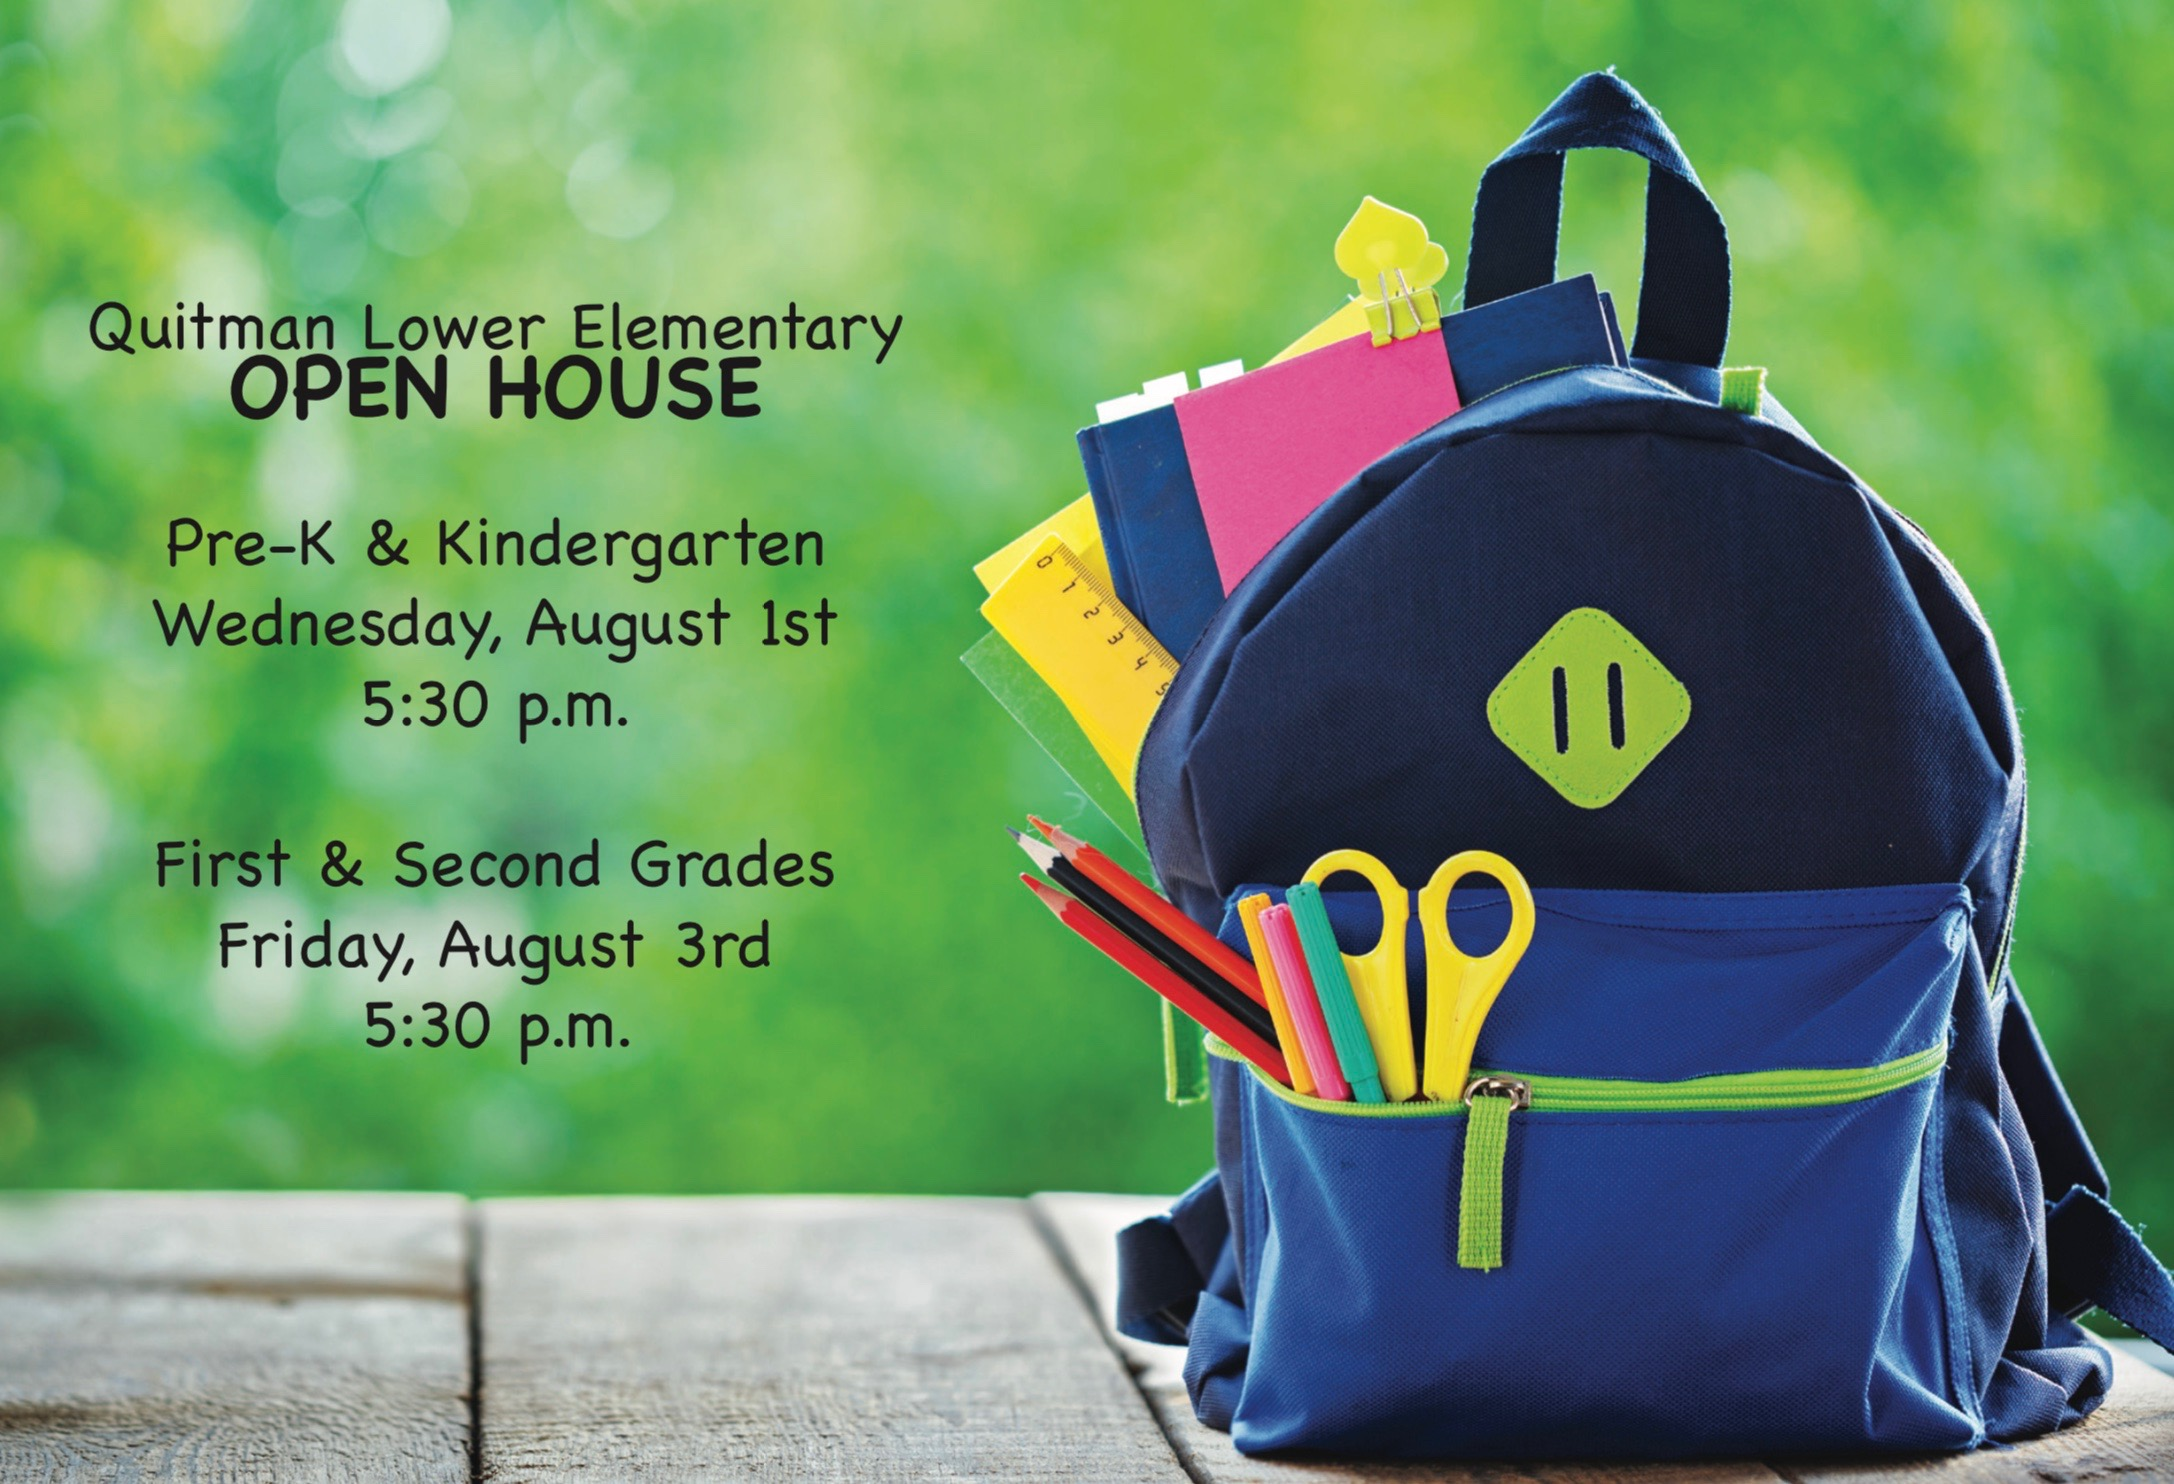 Photo of a backpack with QLE's Open House announcement.